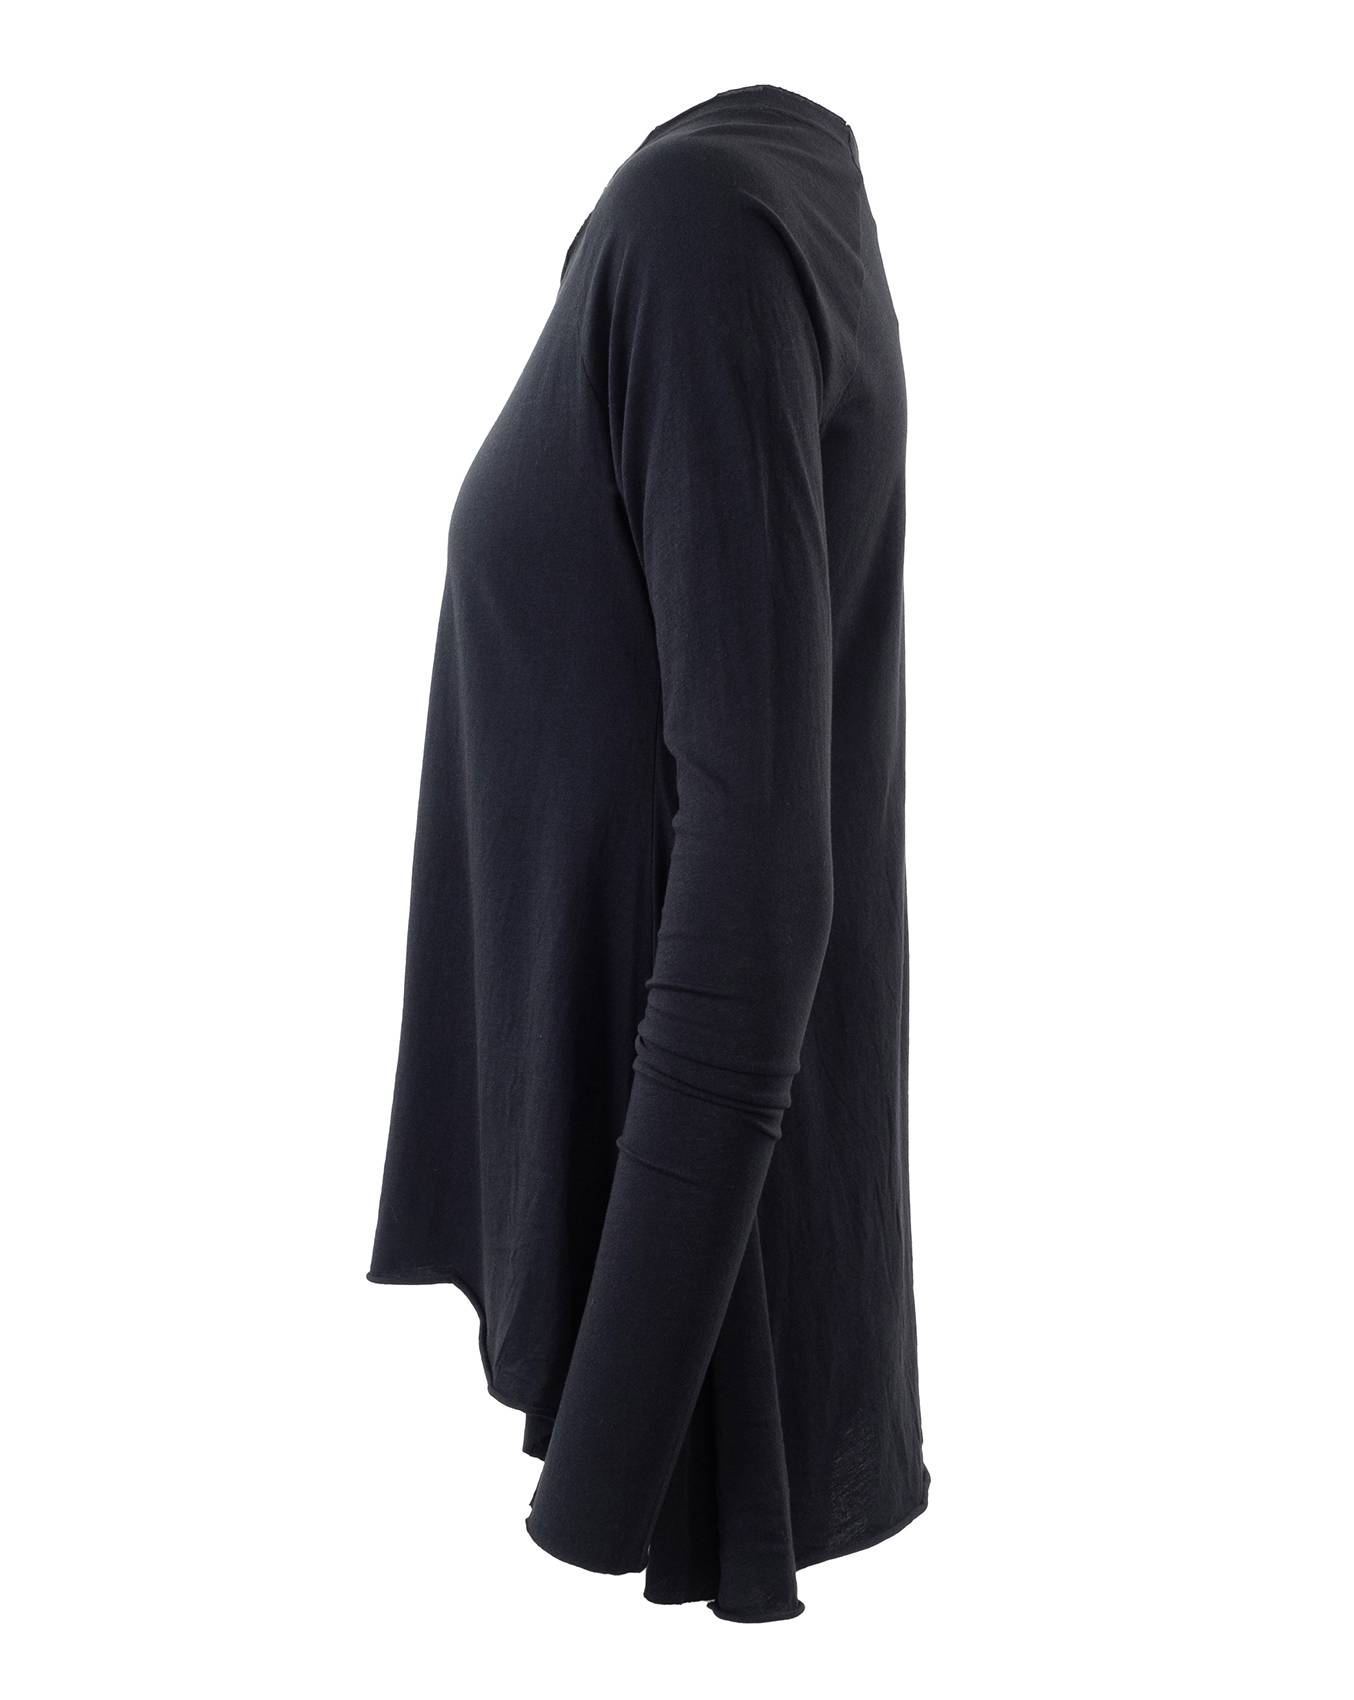 LONG-SHIRT 337 05 12-310 | RUNDHOLZ BLACK LABEL